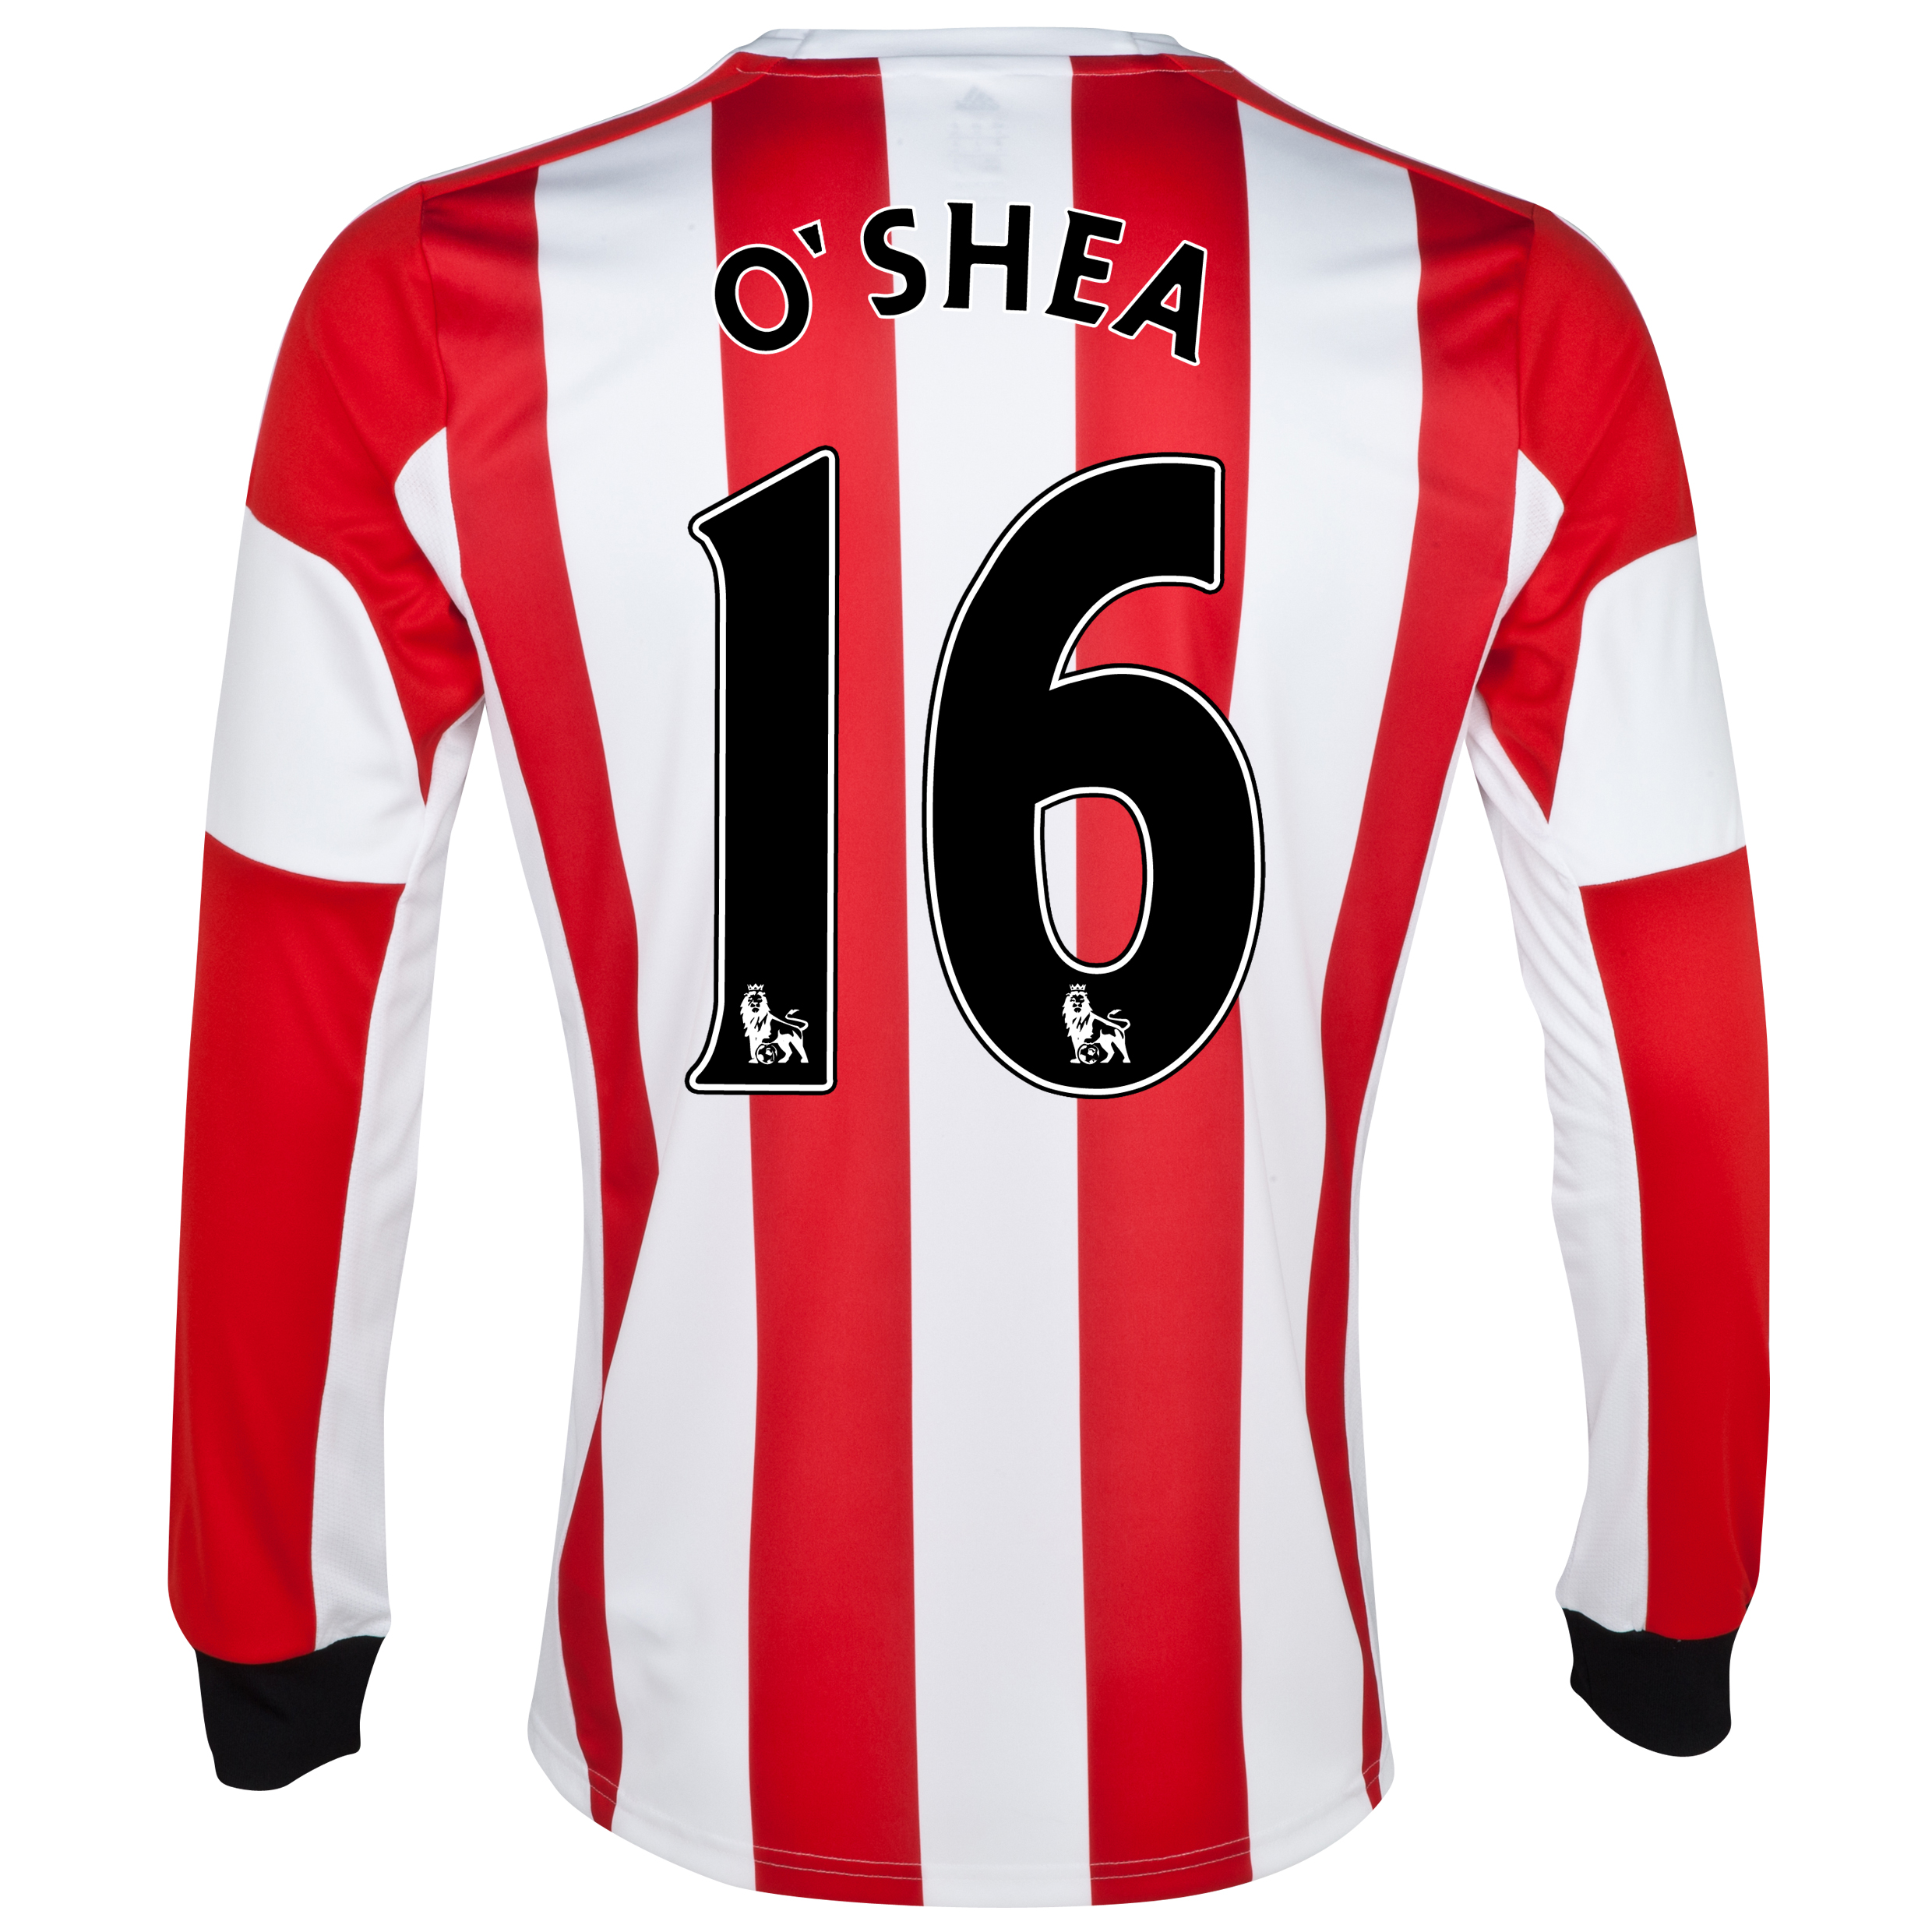 Sunderland Home Shirt 2013/14 - Long Sleeved - Junior with O'Shea 16 printing